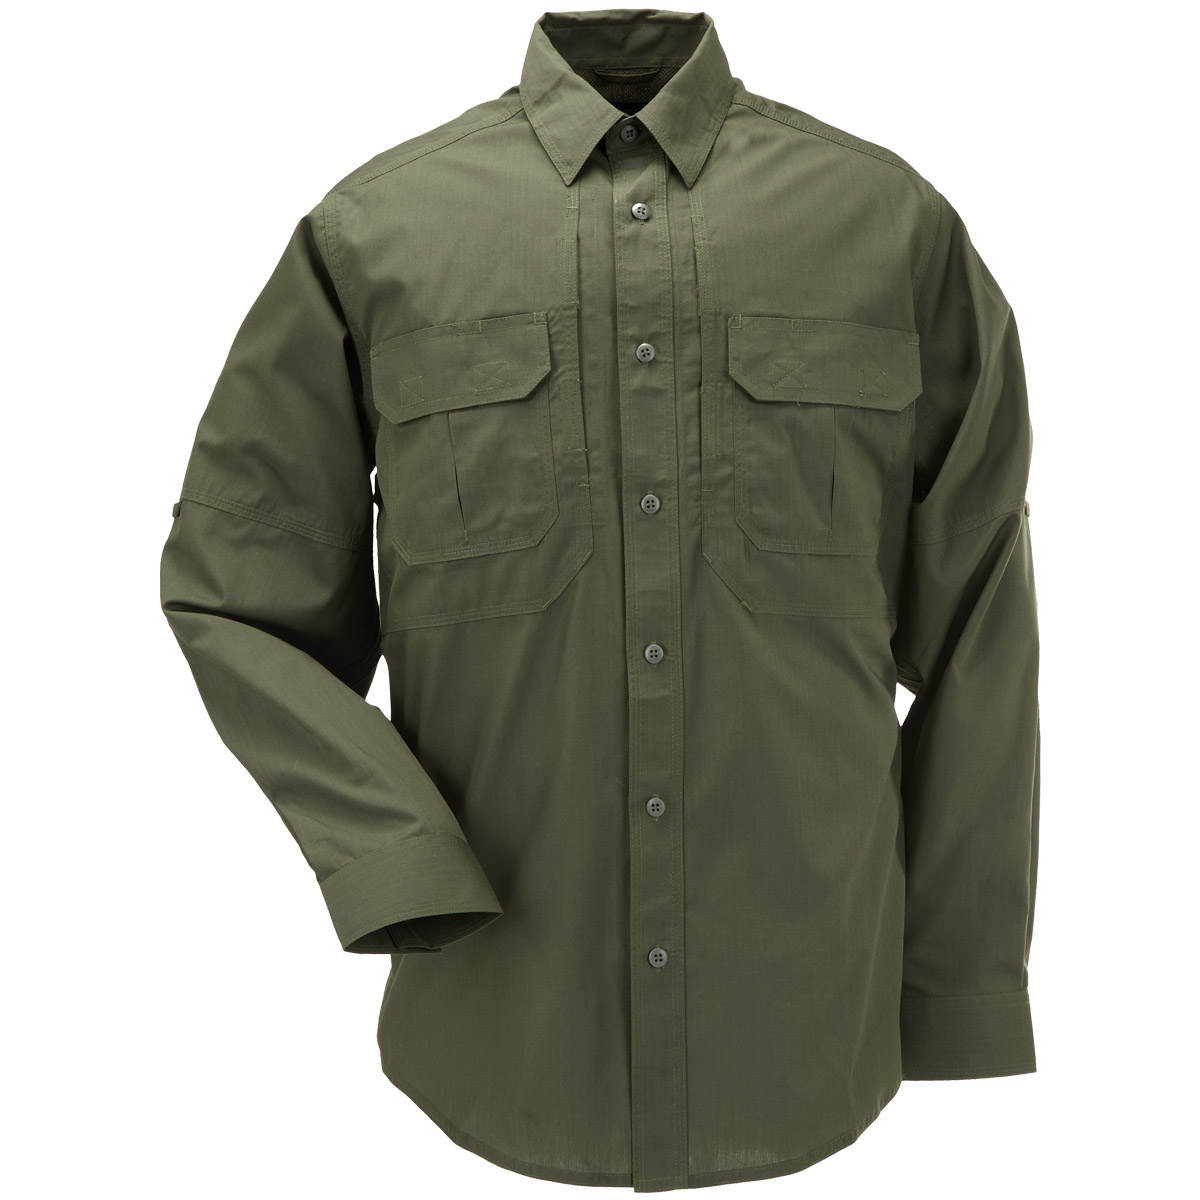 5.11 MILITARY TACLITE PRO US TACTICAL MENS SHIRT LONG SLEEVE ...